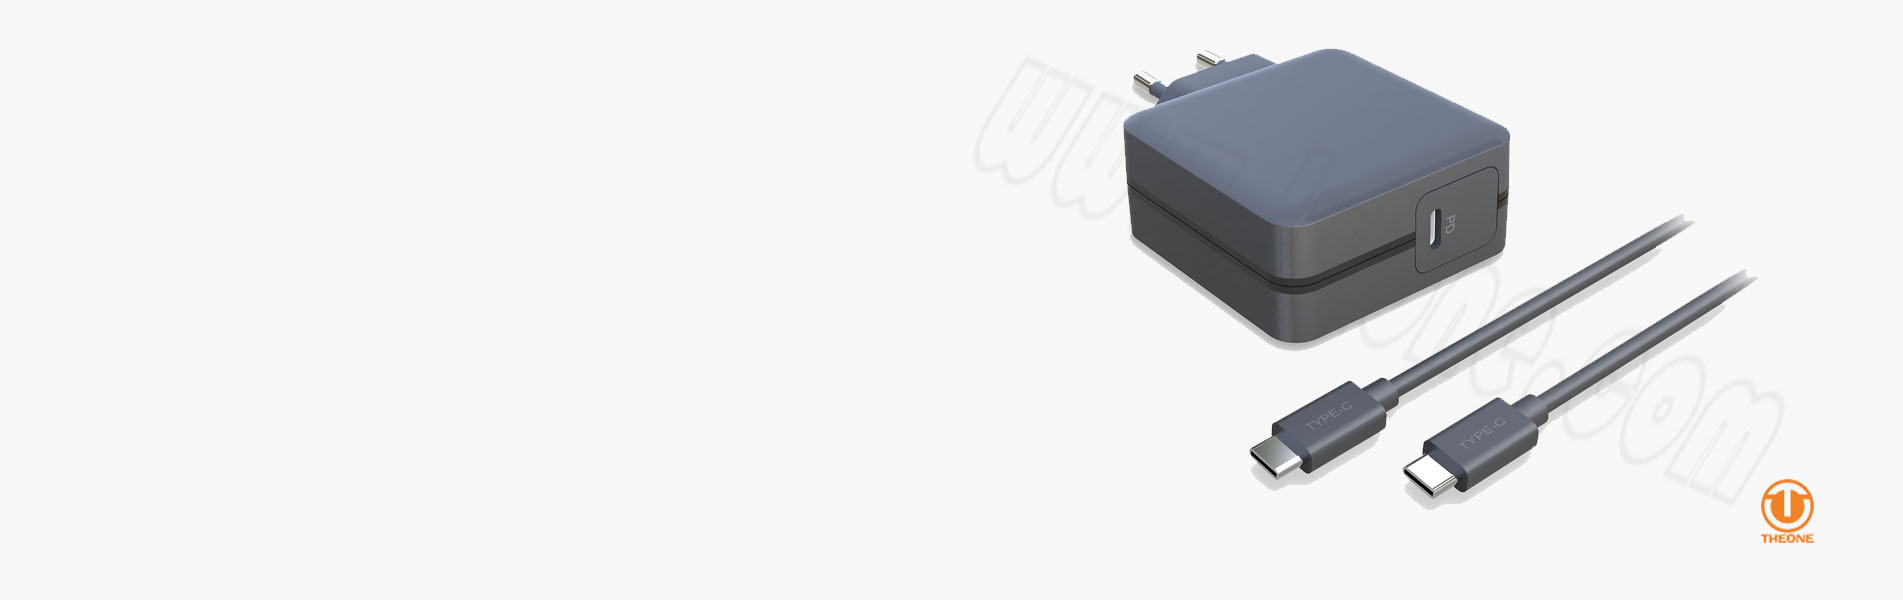 tp301c-banner typec charger